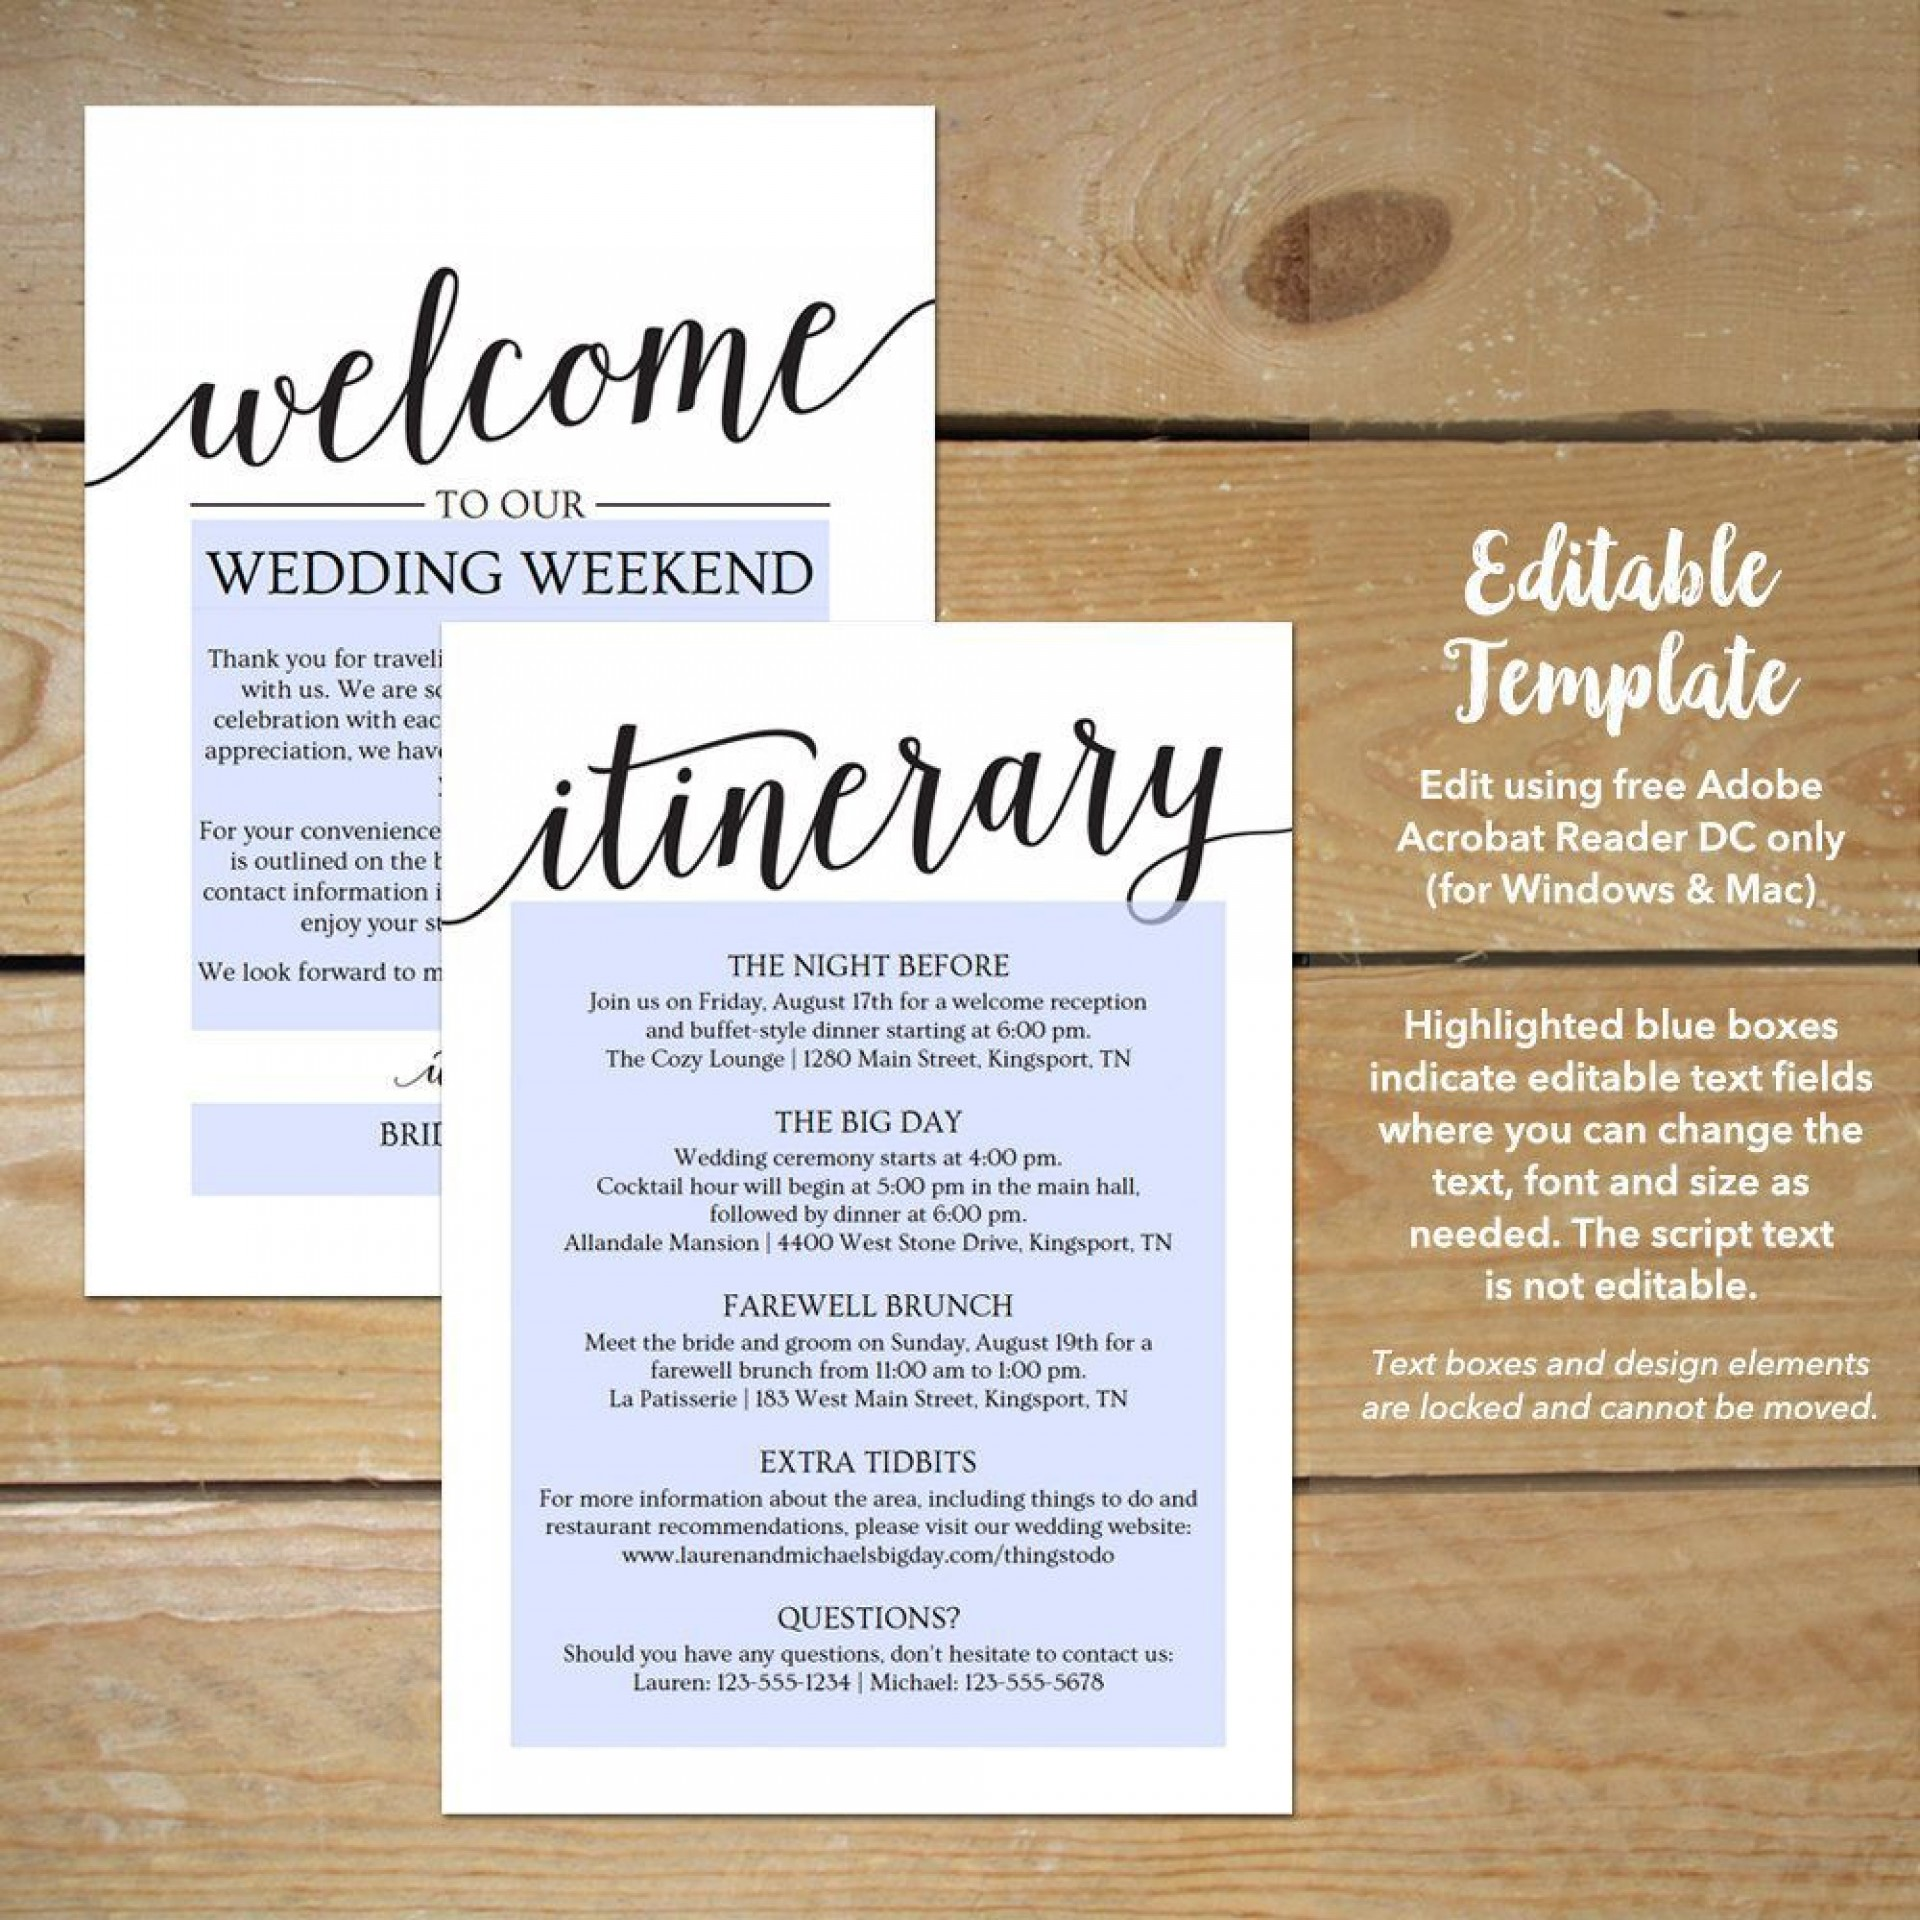 003 Archaicawful Destination Wedding Welcome Letter Template Picture  And Itinerary1920